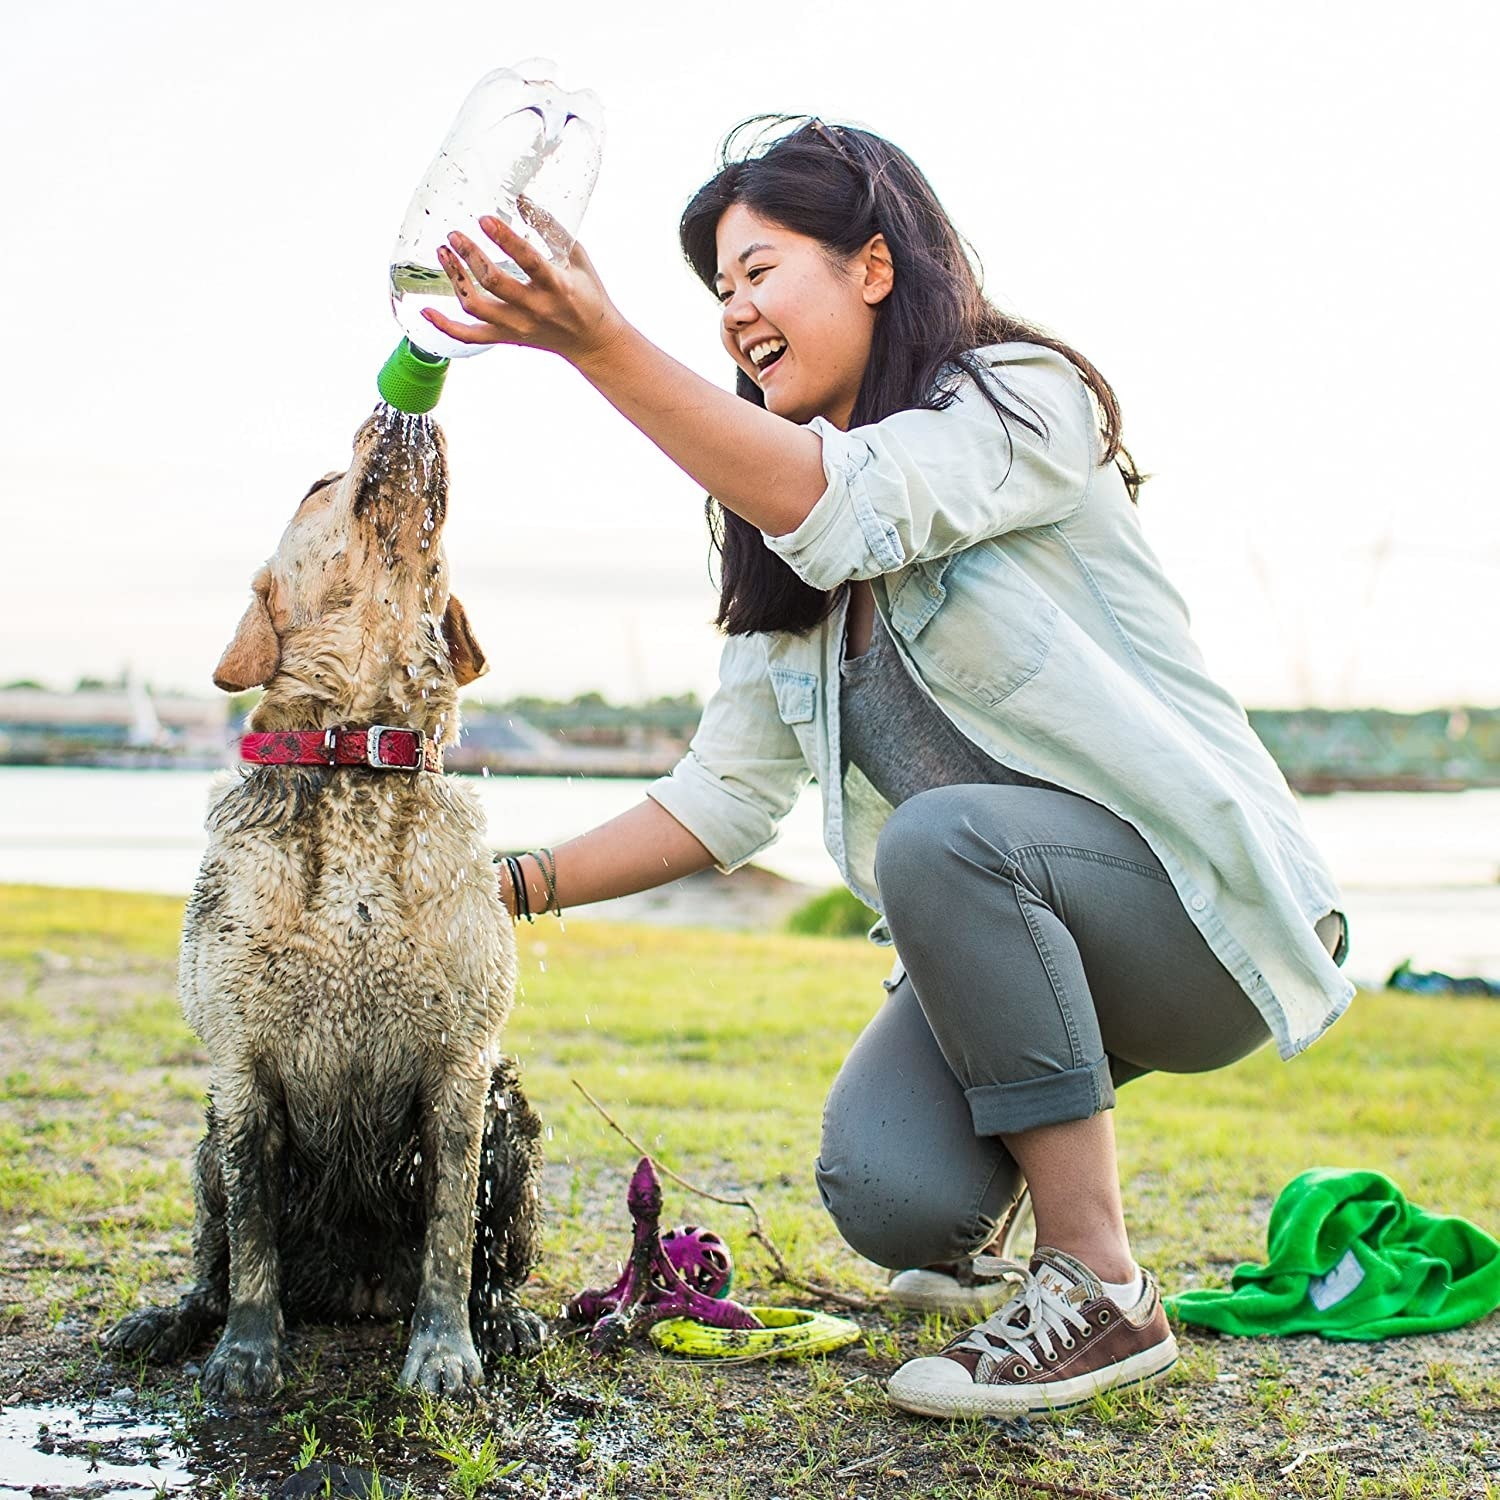 Model pours water on her dog with the green portable outdoor shower